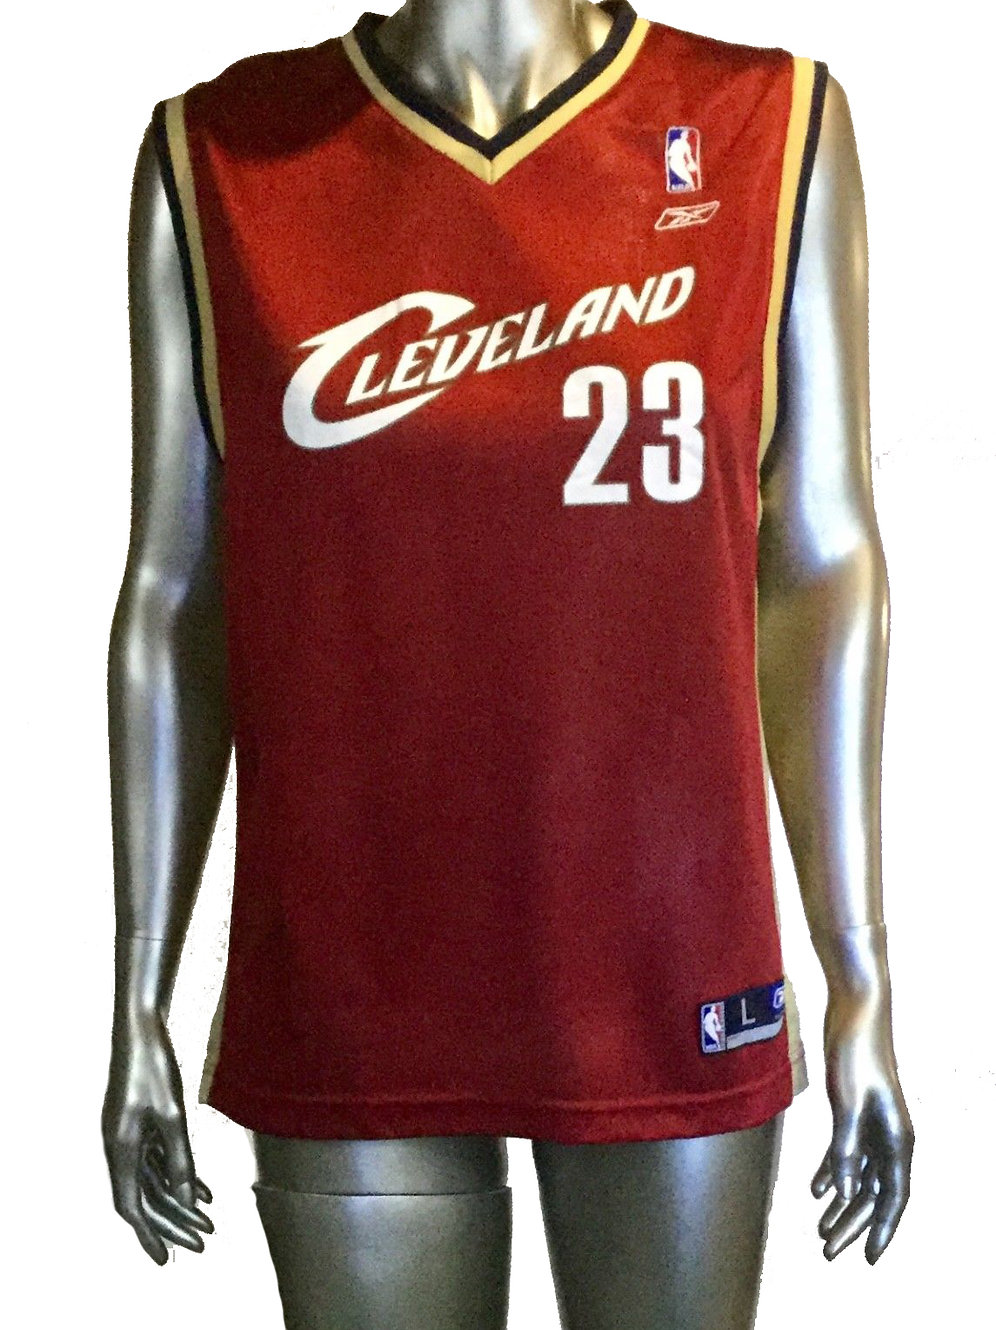 huge discount 11018 717ac Reebok Youth LeBron James Jersey Size Large 14-16 #23 Cleveland Cavaliers  NBA | sinaitex